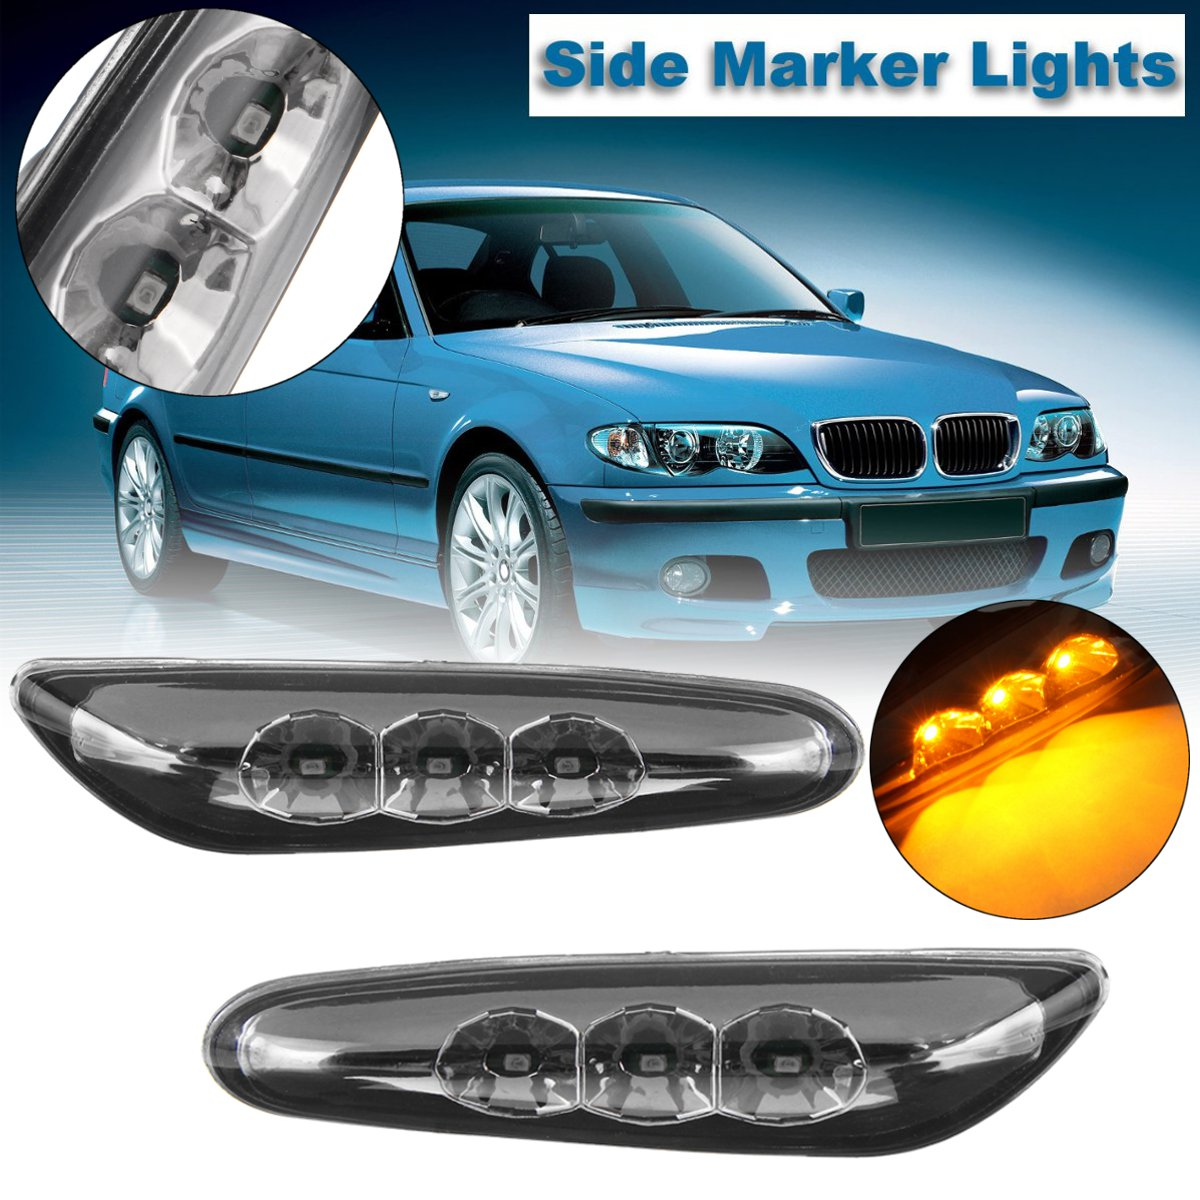 Pair LED Turn Signal Light Side Marker Indicator Lamp for BMW E82 E88 E60 E61 E90 E91 E92 E93